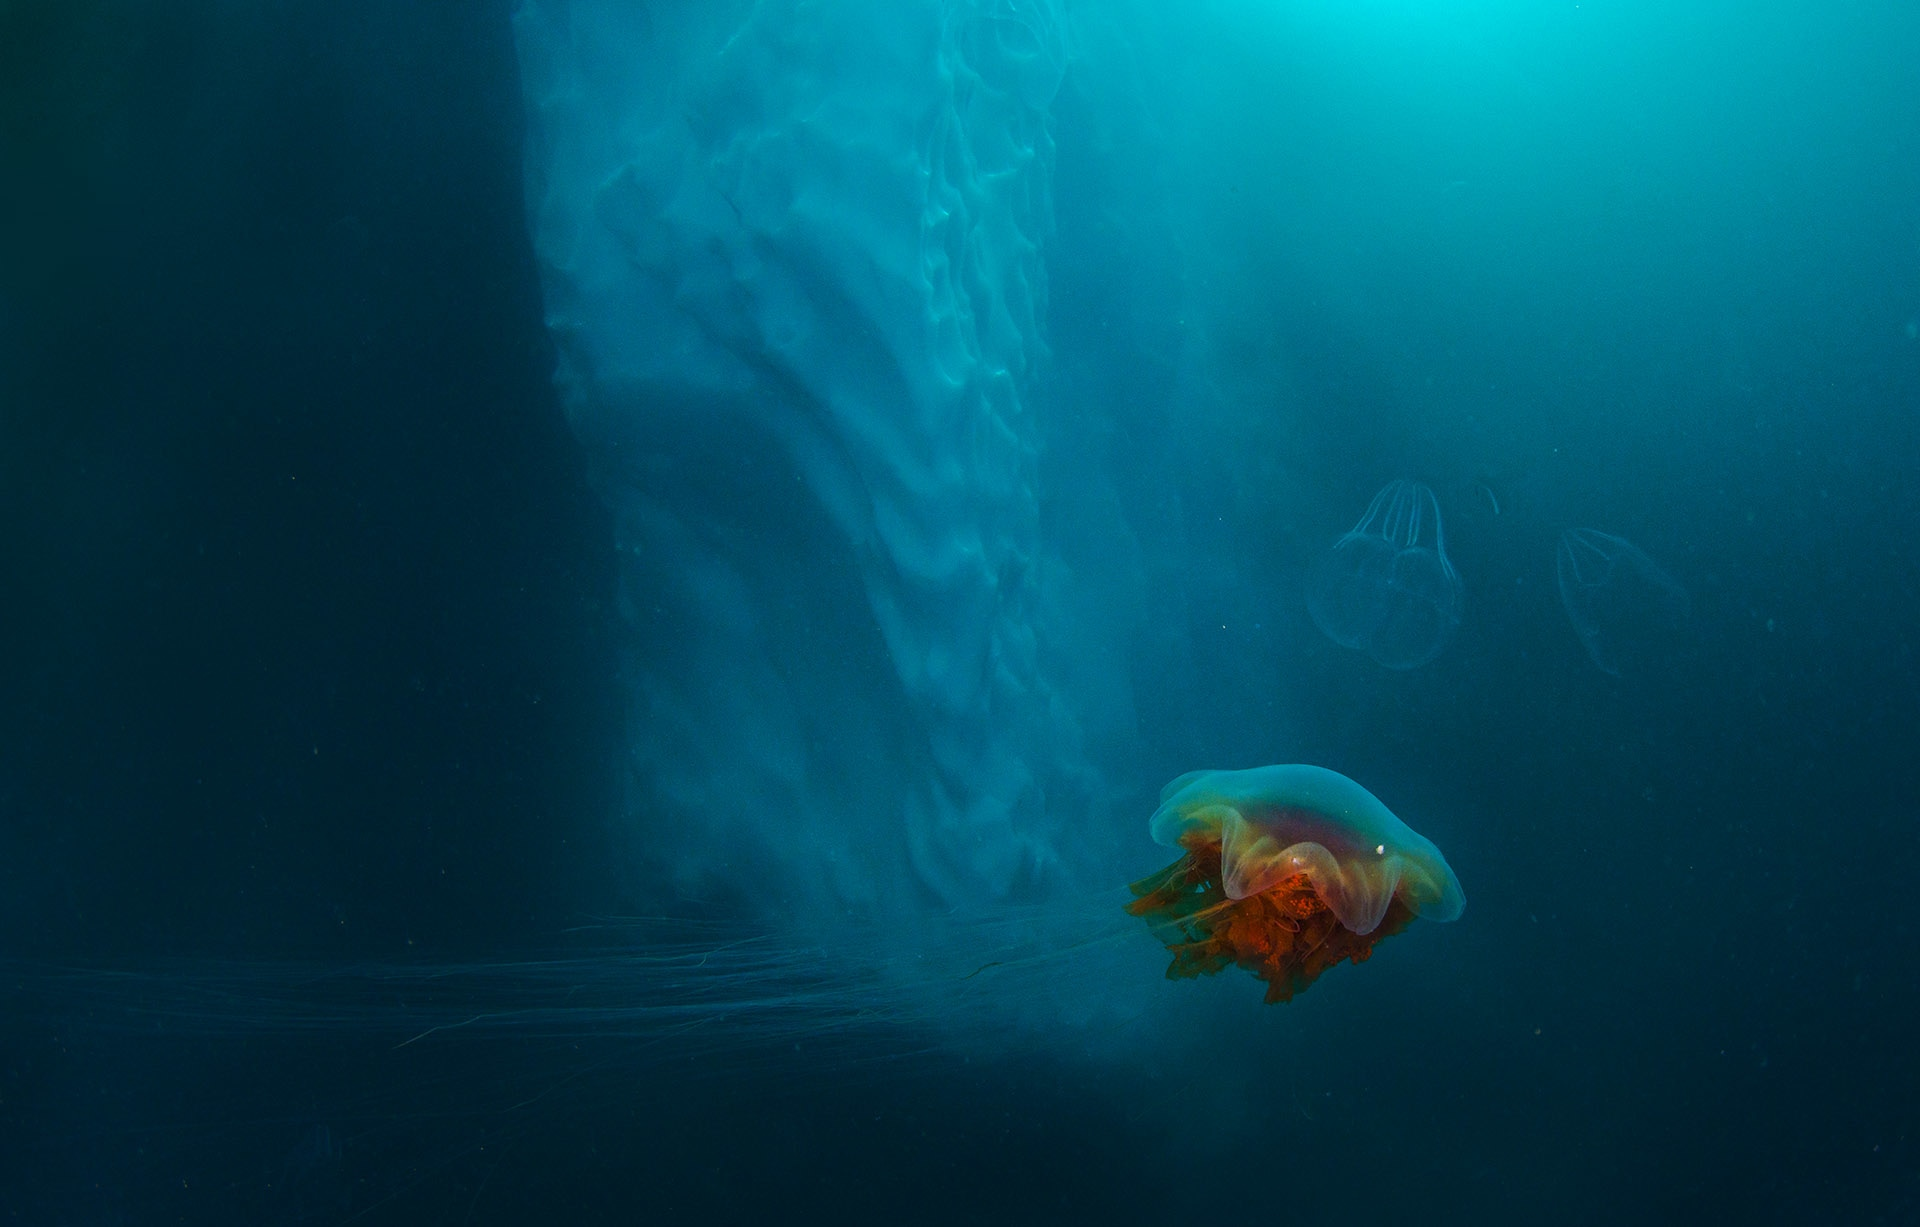 There are generally few life forms around icebergs, as the temperature is very low and the ice doesn't have much nutrition to offer. But there are jellyfish, says Dhritiman. Some, like this lion's mane jellyfish, have tentacles that are over a hundred feet in length, making it longer than the blue whale.